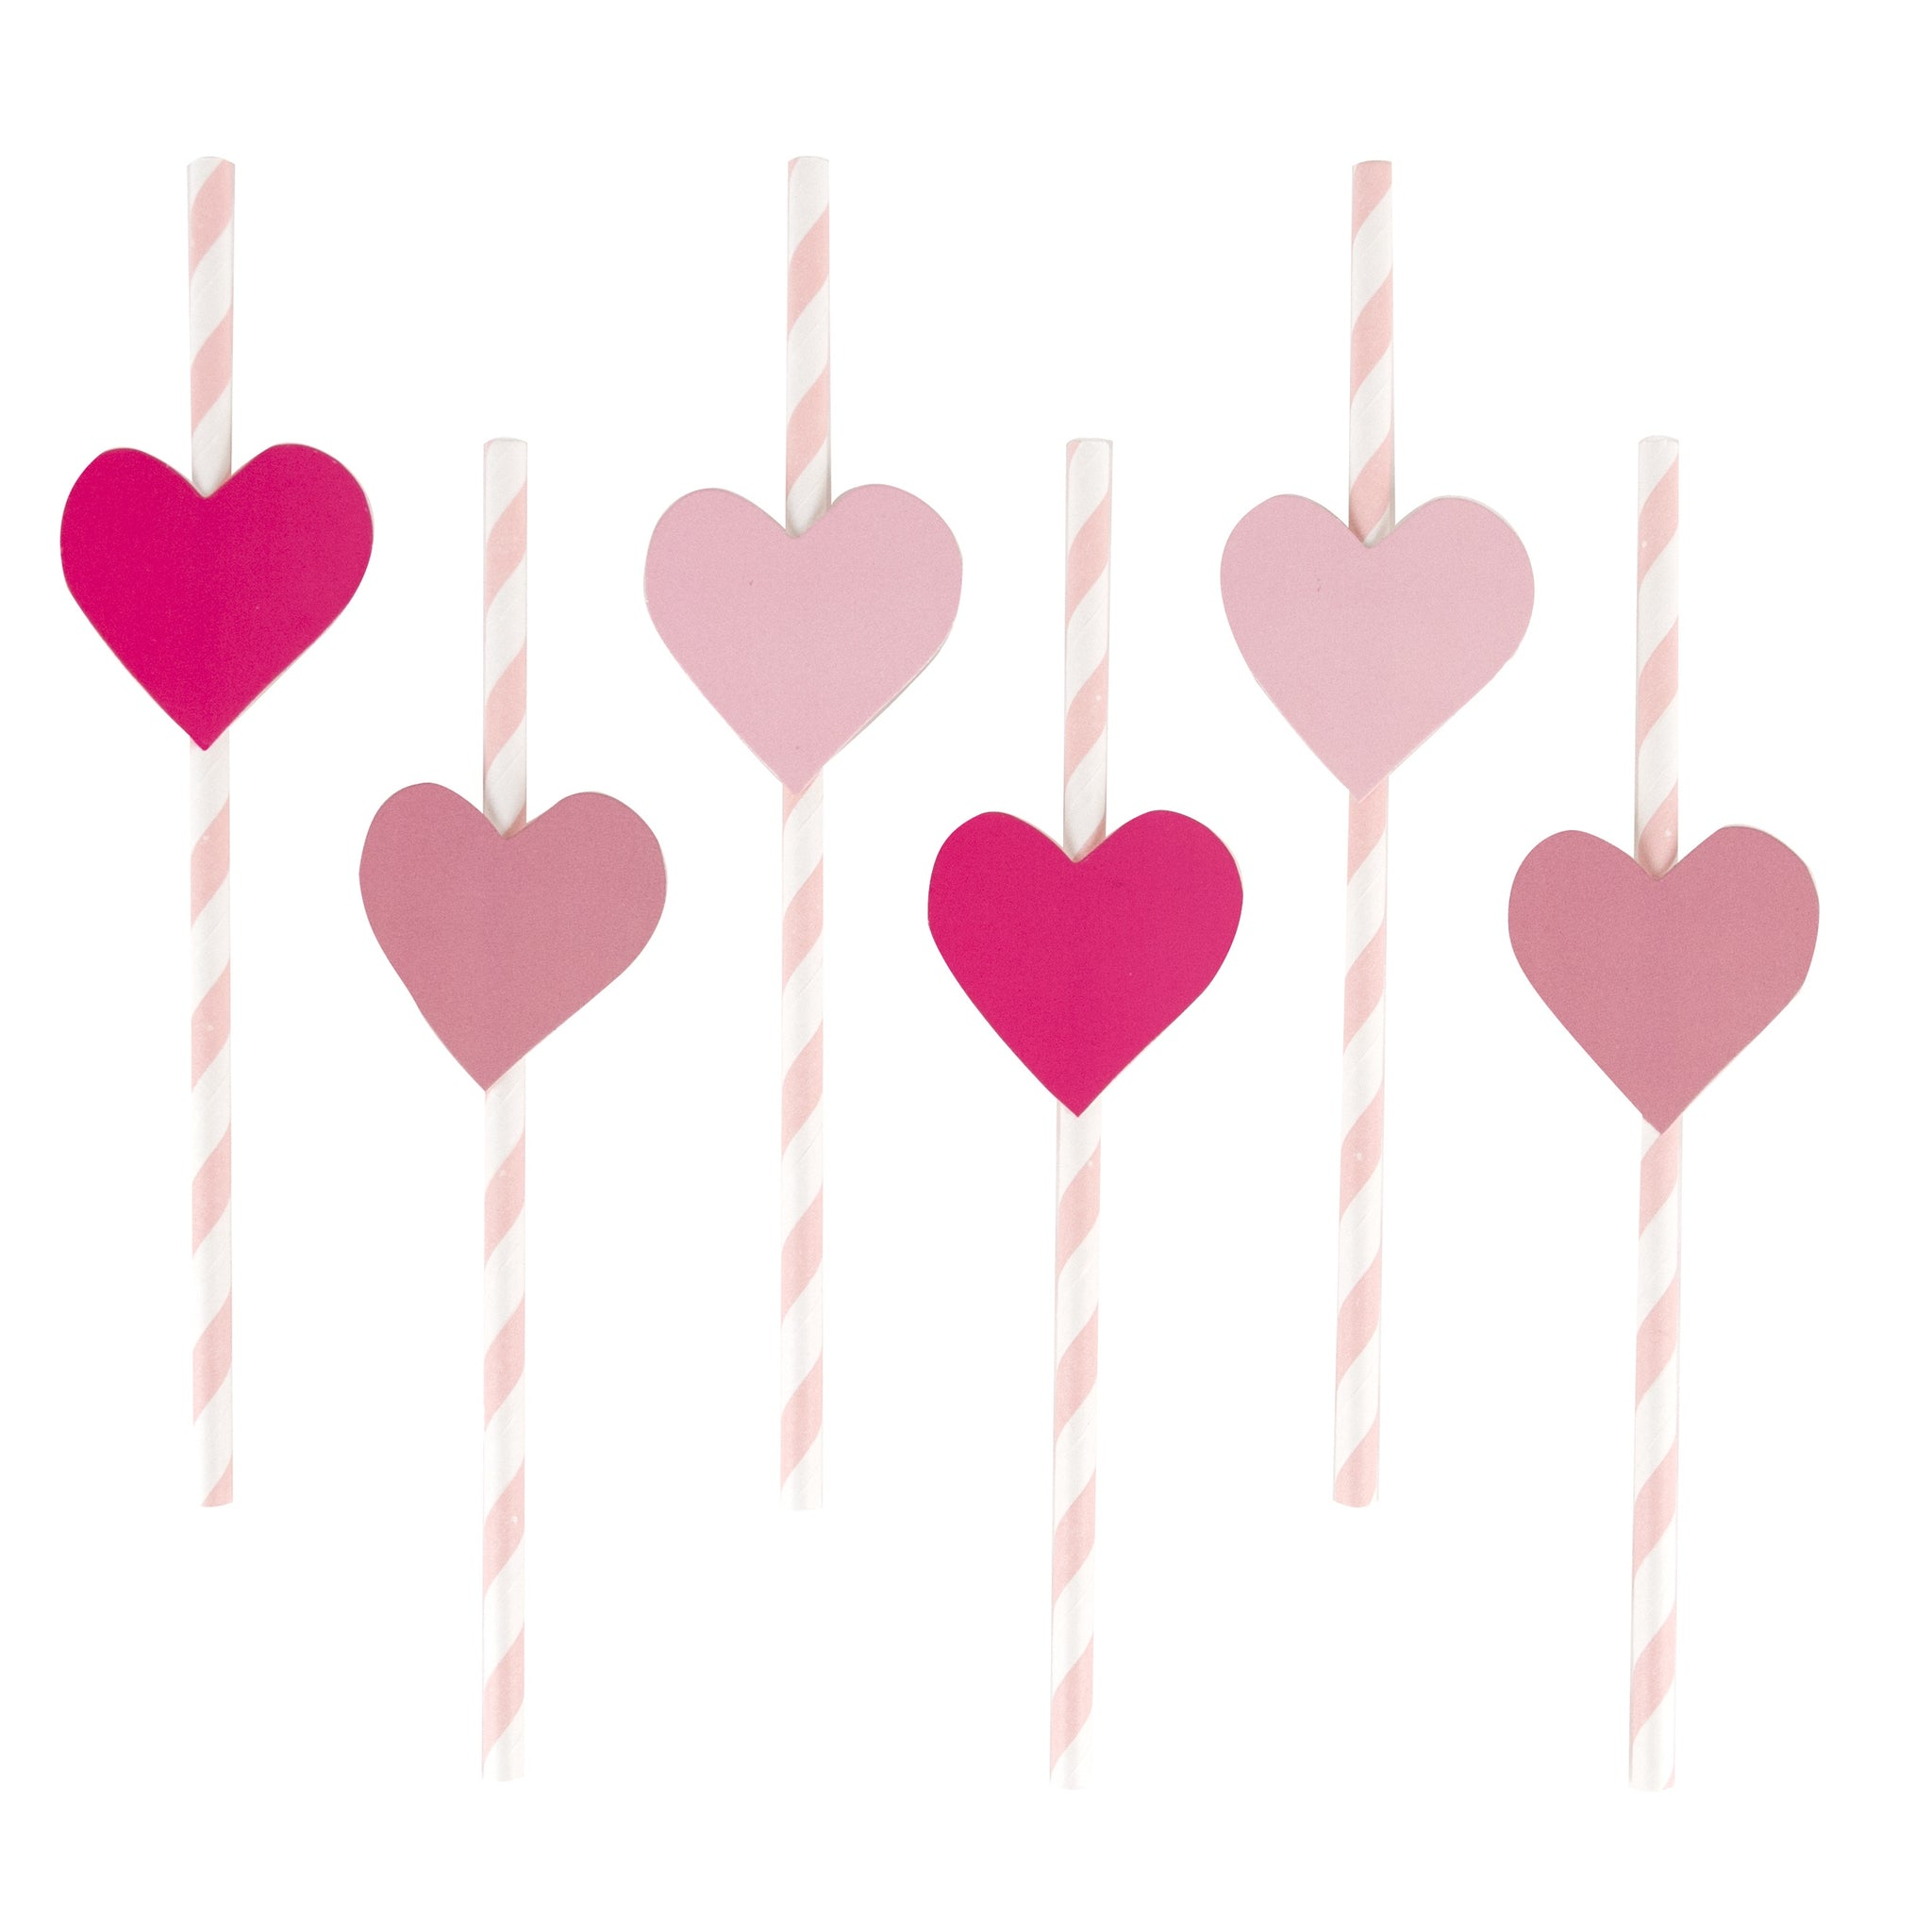 My Little Day 12 paper straws - pink heart